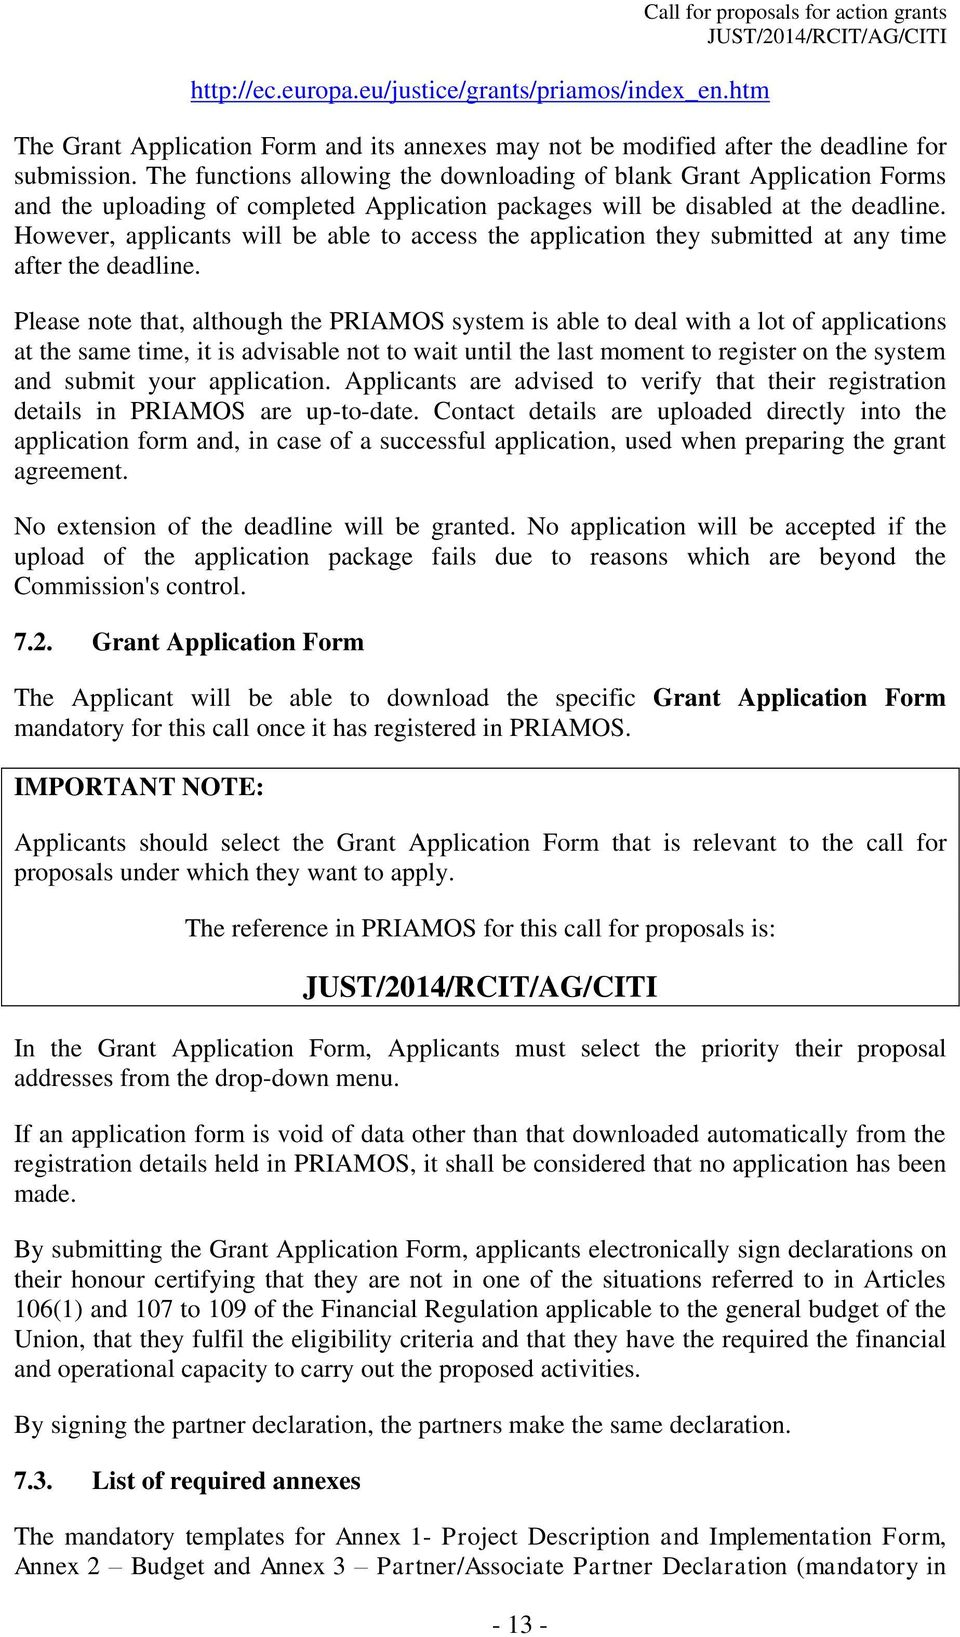 However, applicants will be able to access the application they submitted at any time after the deadline.